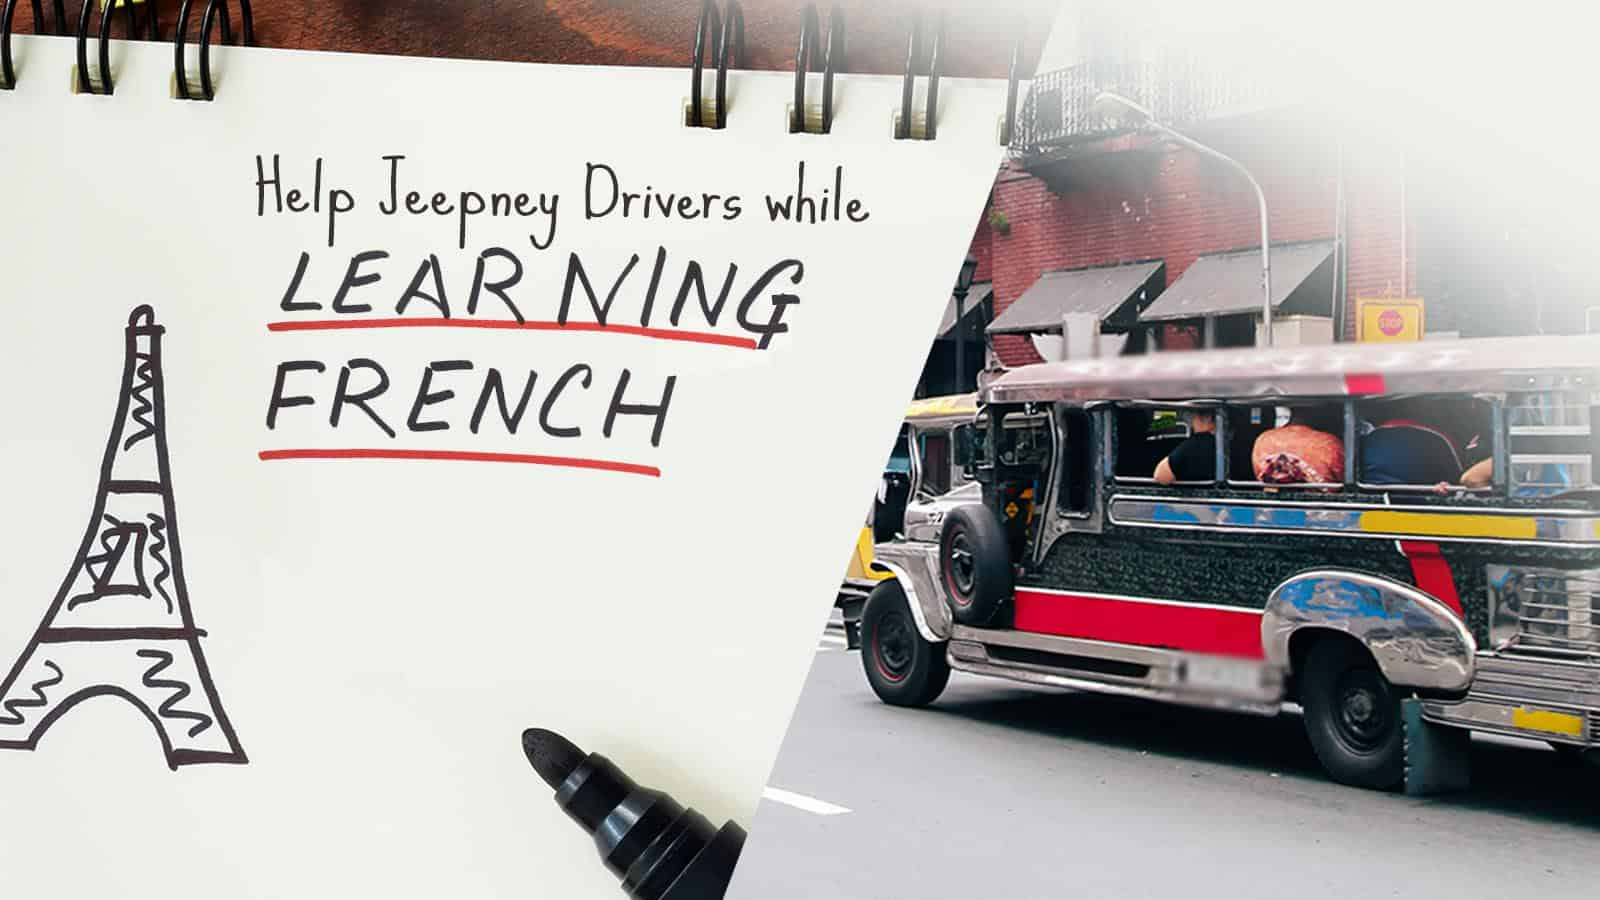 Help UP Jeepney Drivers while Learning FRENCH!